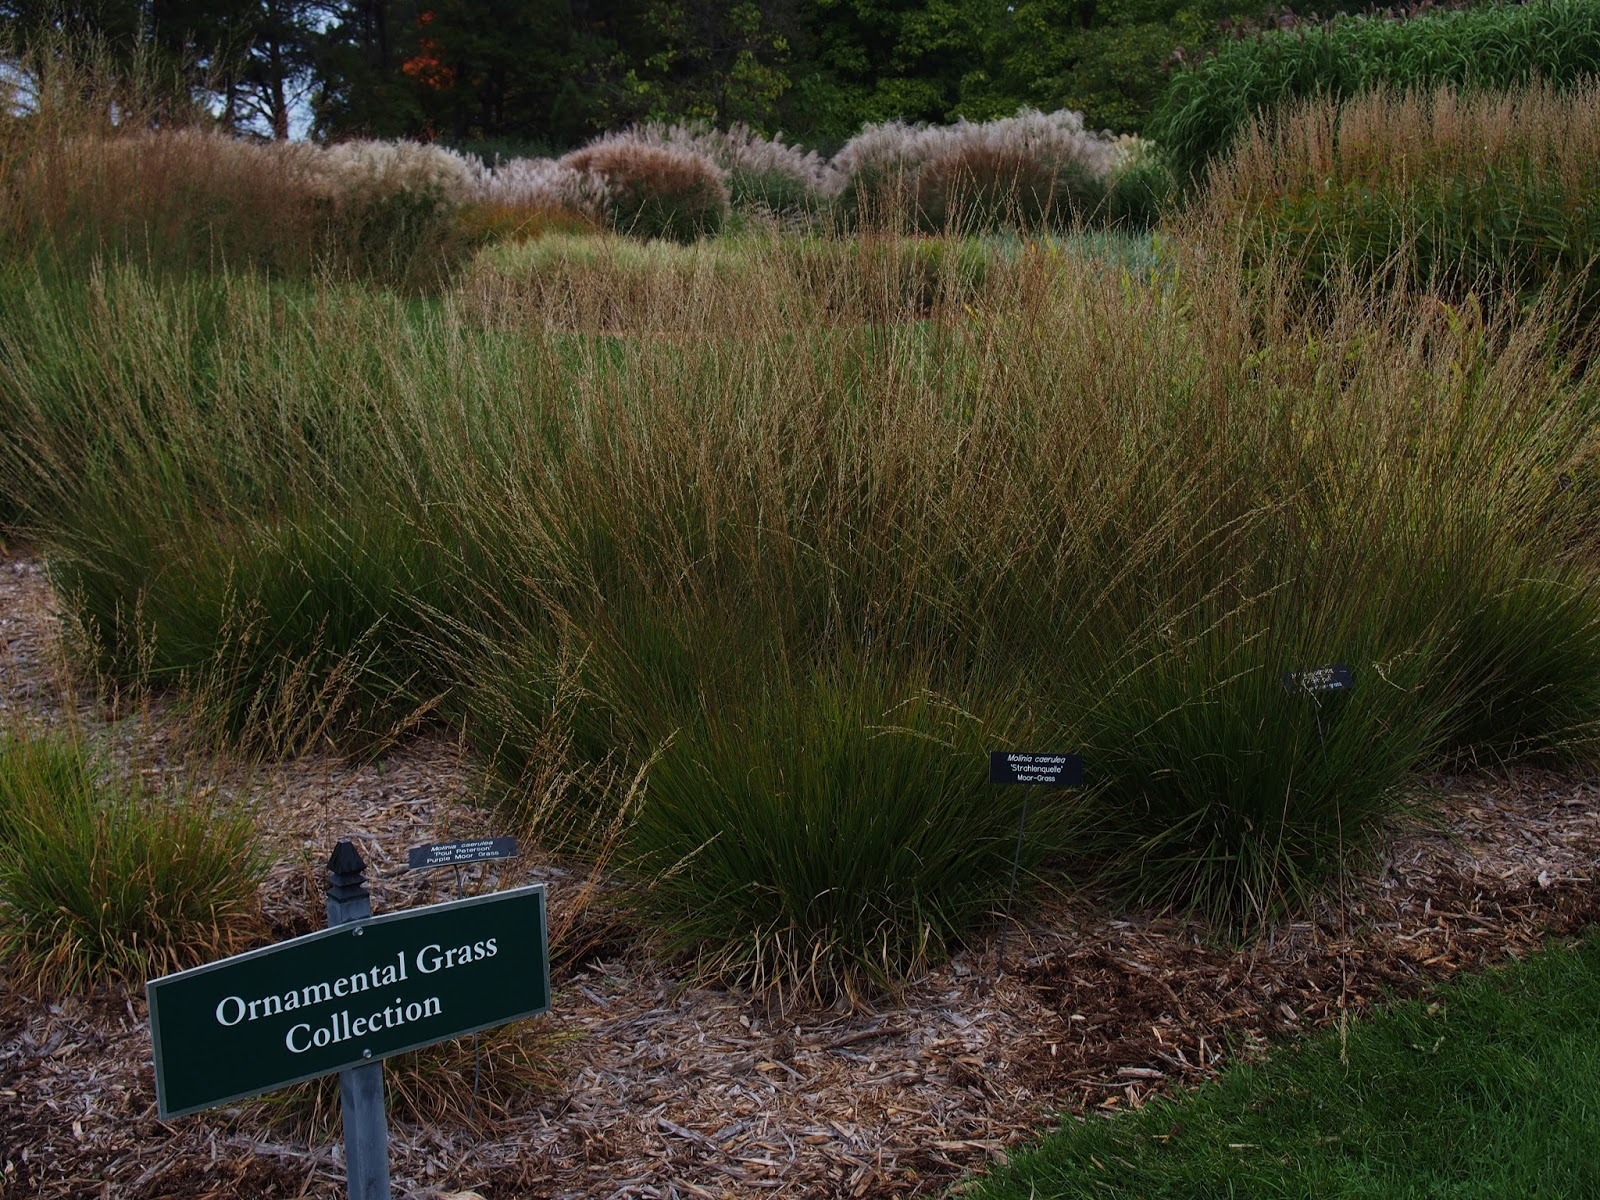 30th anniversary highlights ornamental grasses trend for for Low ornamental grasses